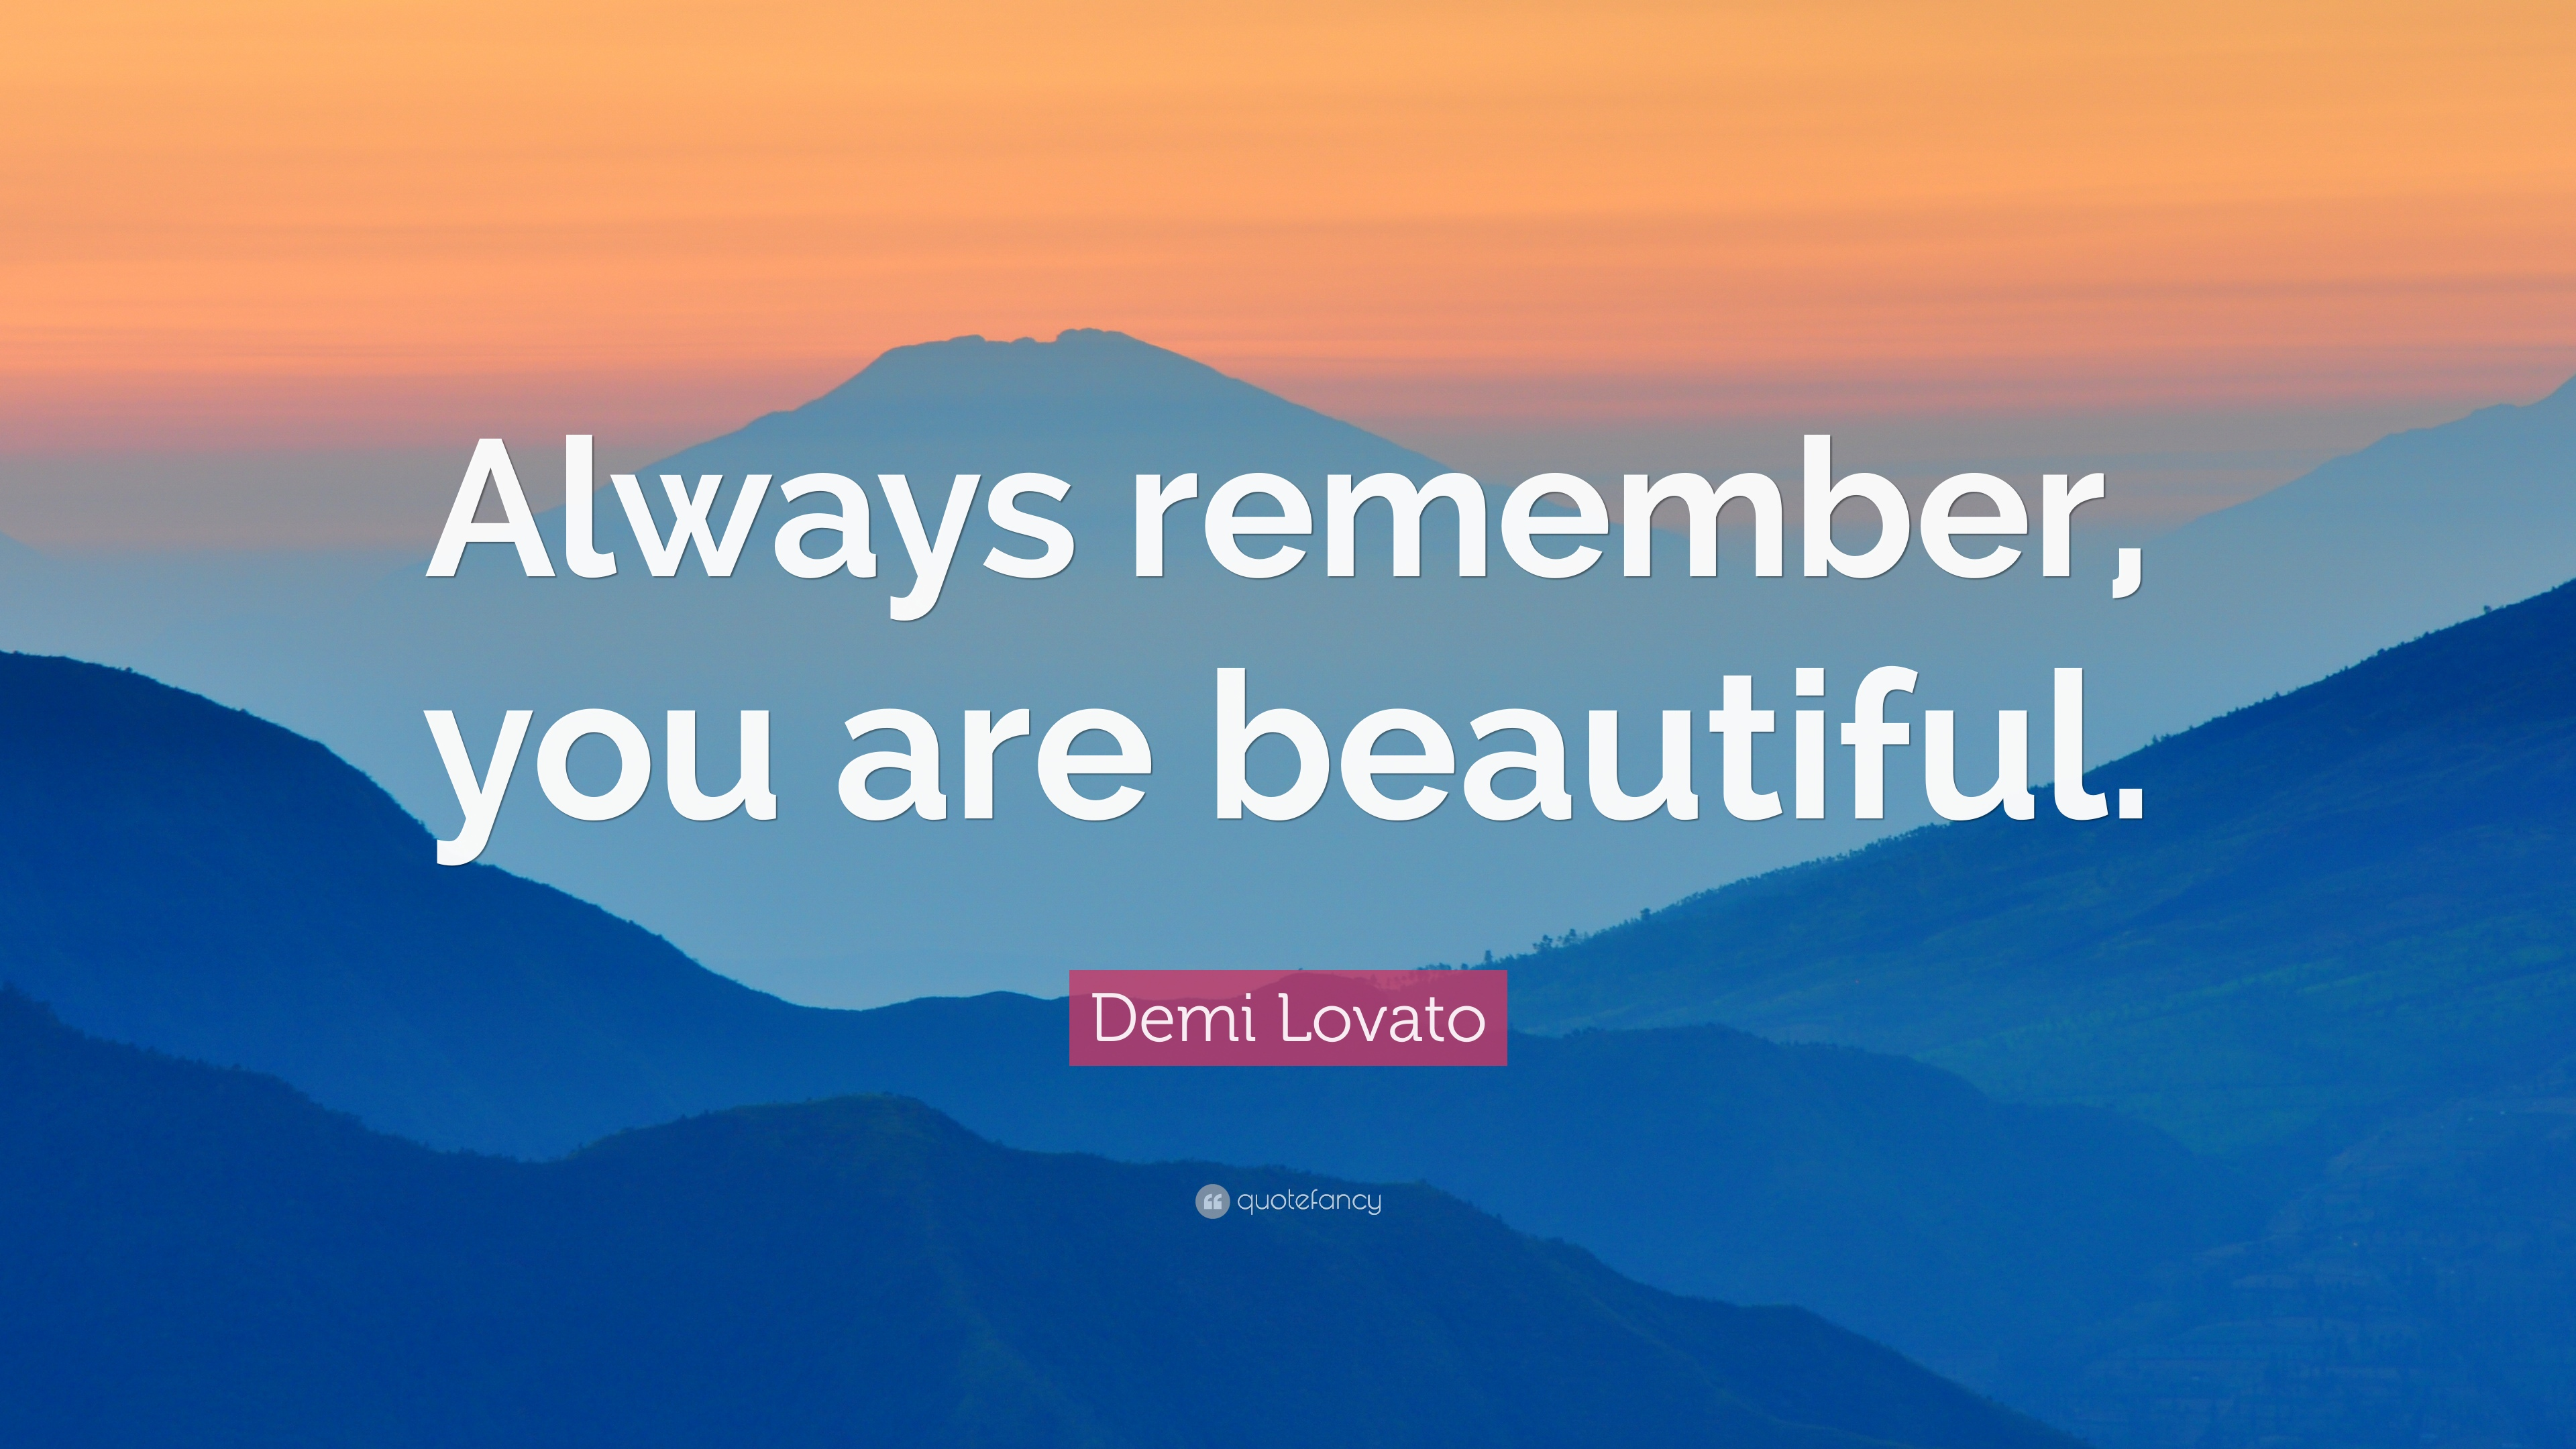 Demi Lovato Quote: U201cAlways Remember, You Are Beautiful.u201d